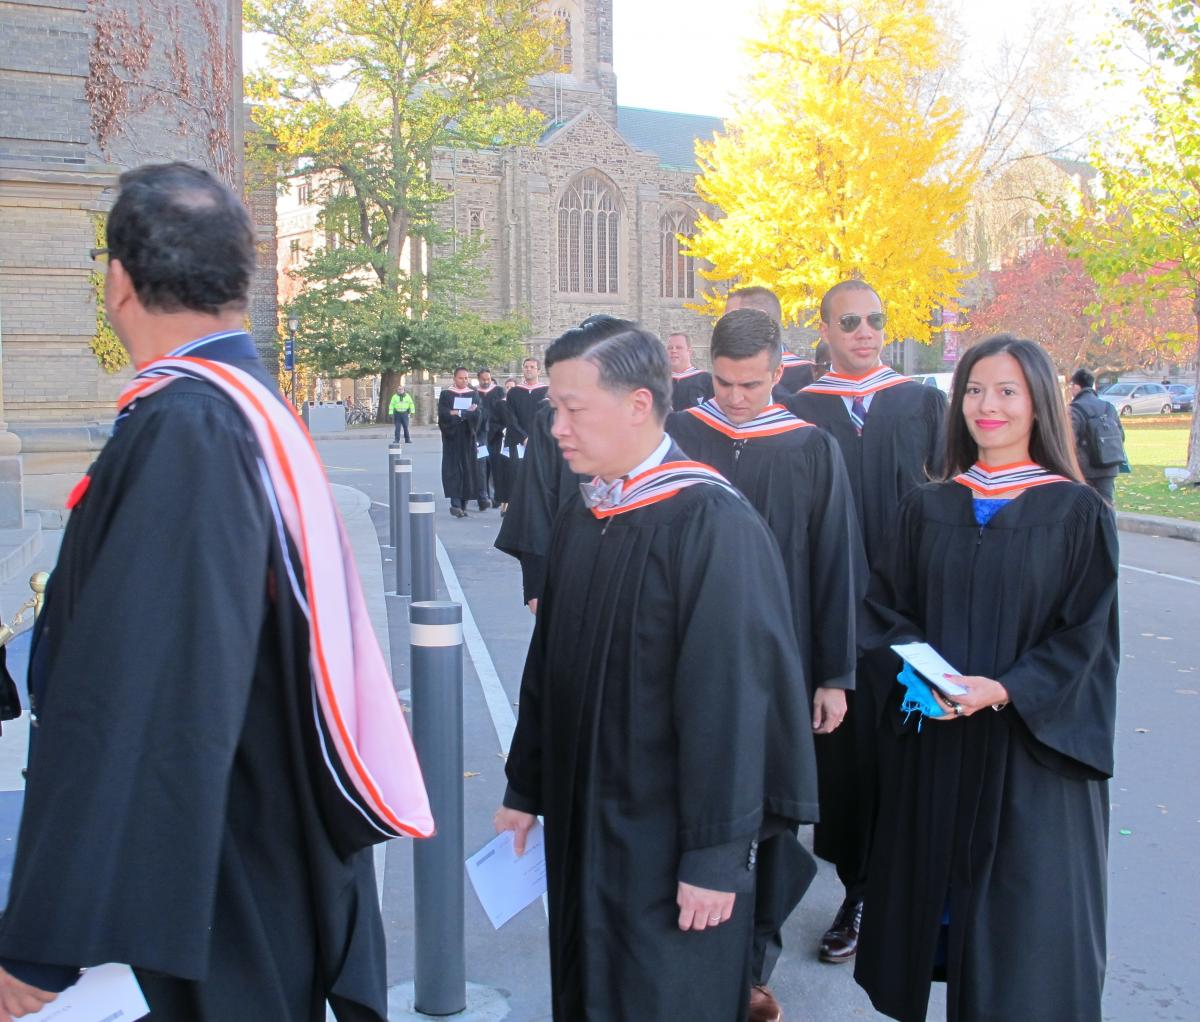 Graduates of the GPLLM Class of 2015 enter Convocation Hall on Nov. 9, 2015